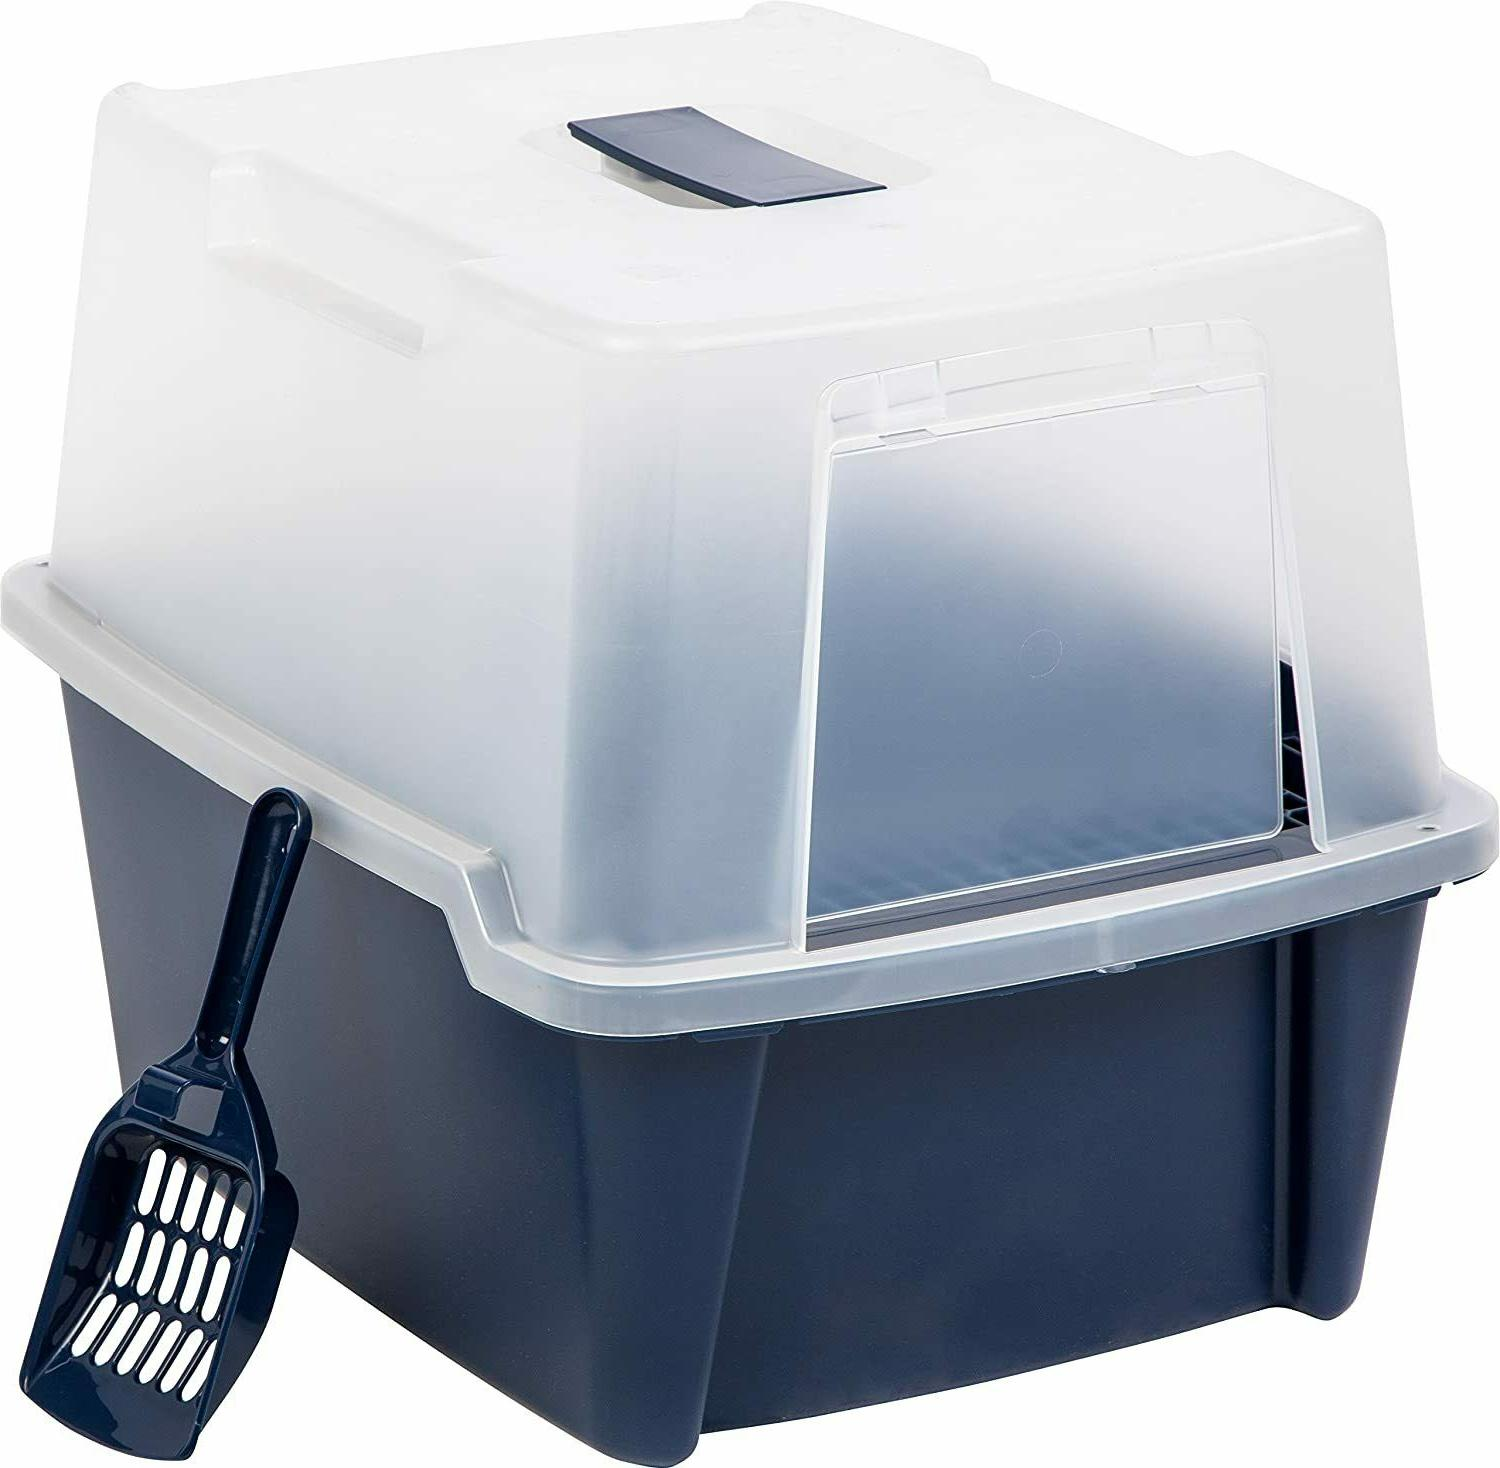 Cats Litter Box Large Hooded Litter Box with Scoop and Grate